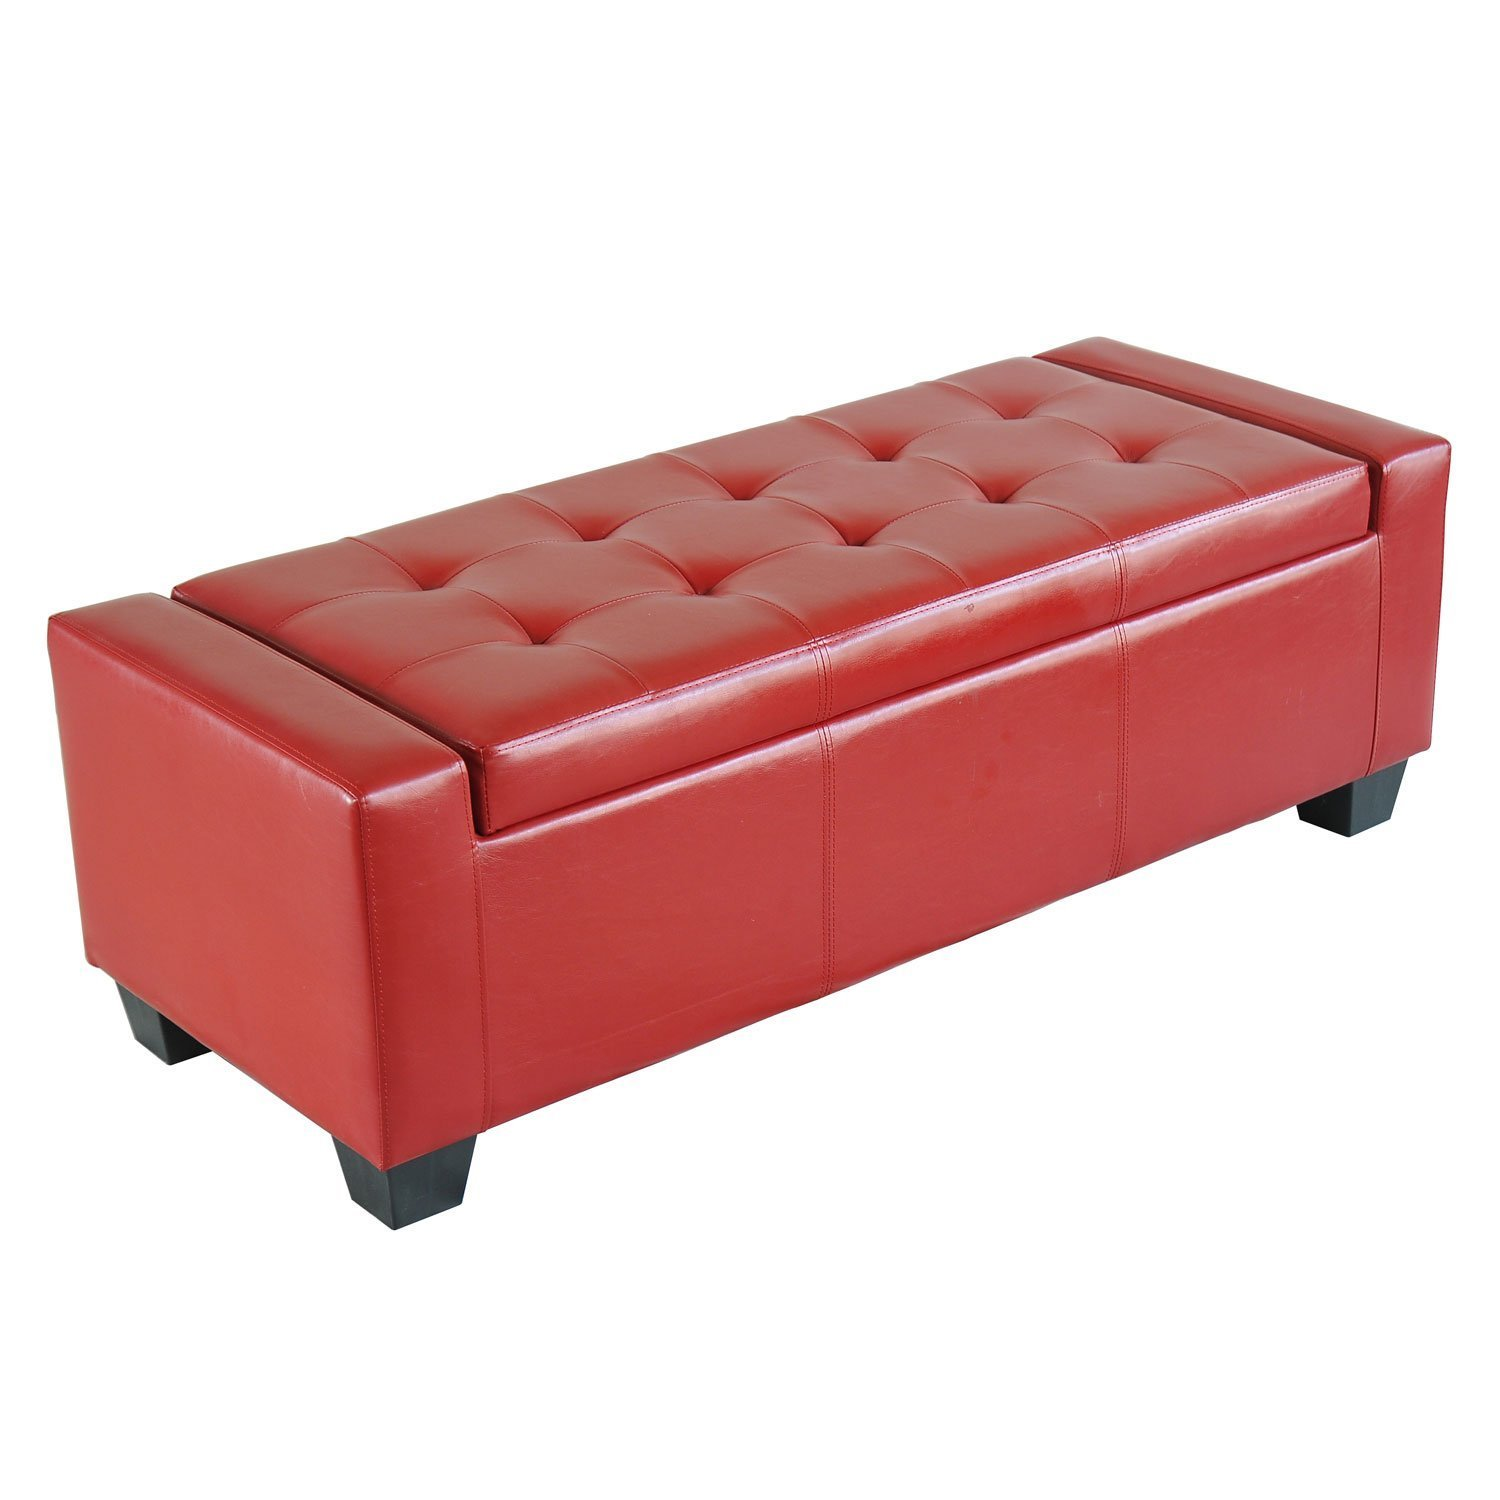 Homcom Faux Leather Storage Ottoman / Shoe Bench - Red by HOMCOM